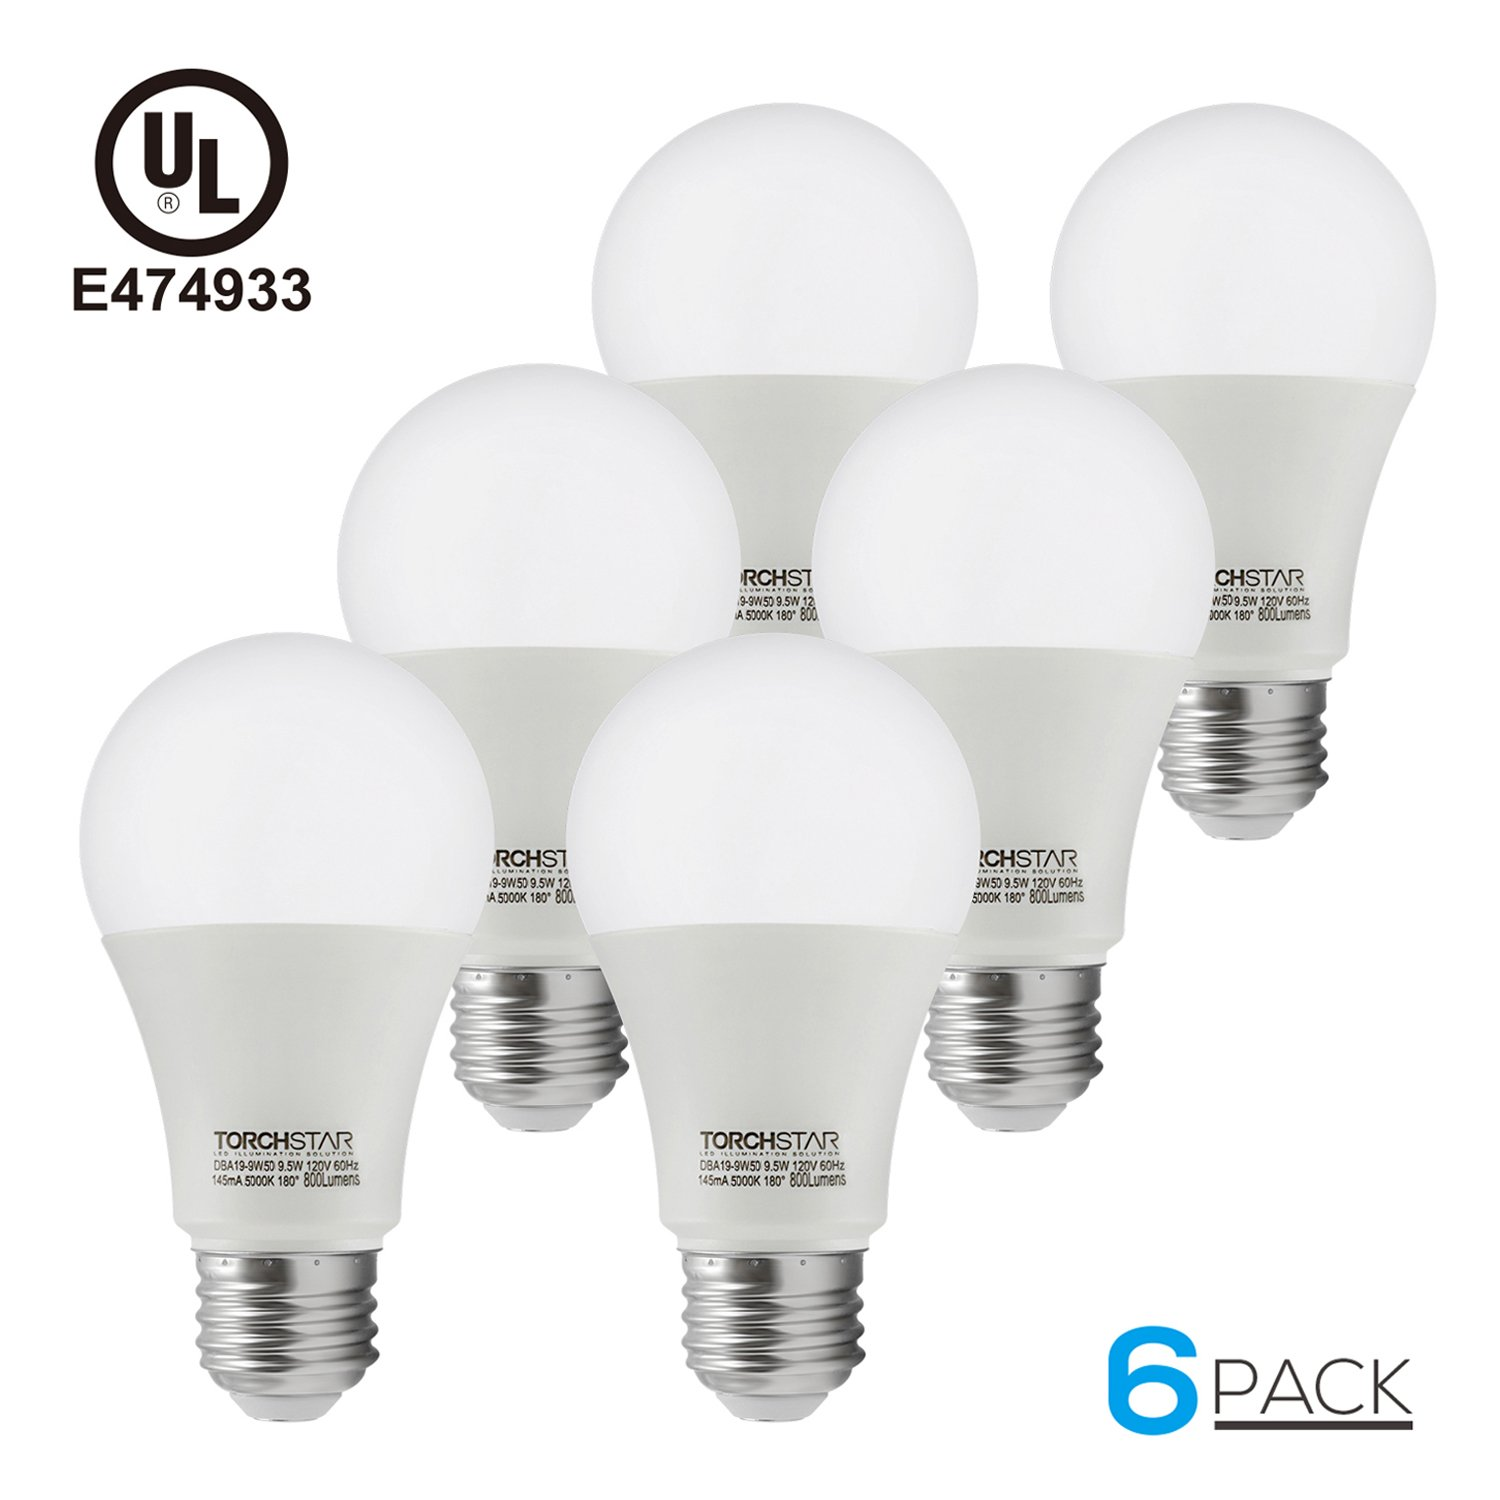 Luceo 5W 2700K Warm White Dimmable GU10 LED Lamp Spot Spotlights Low Energy